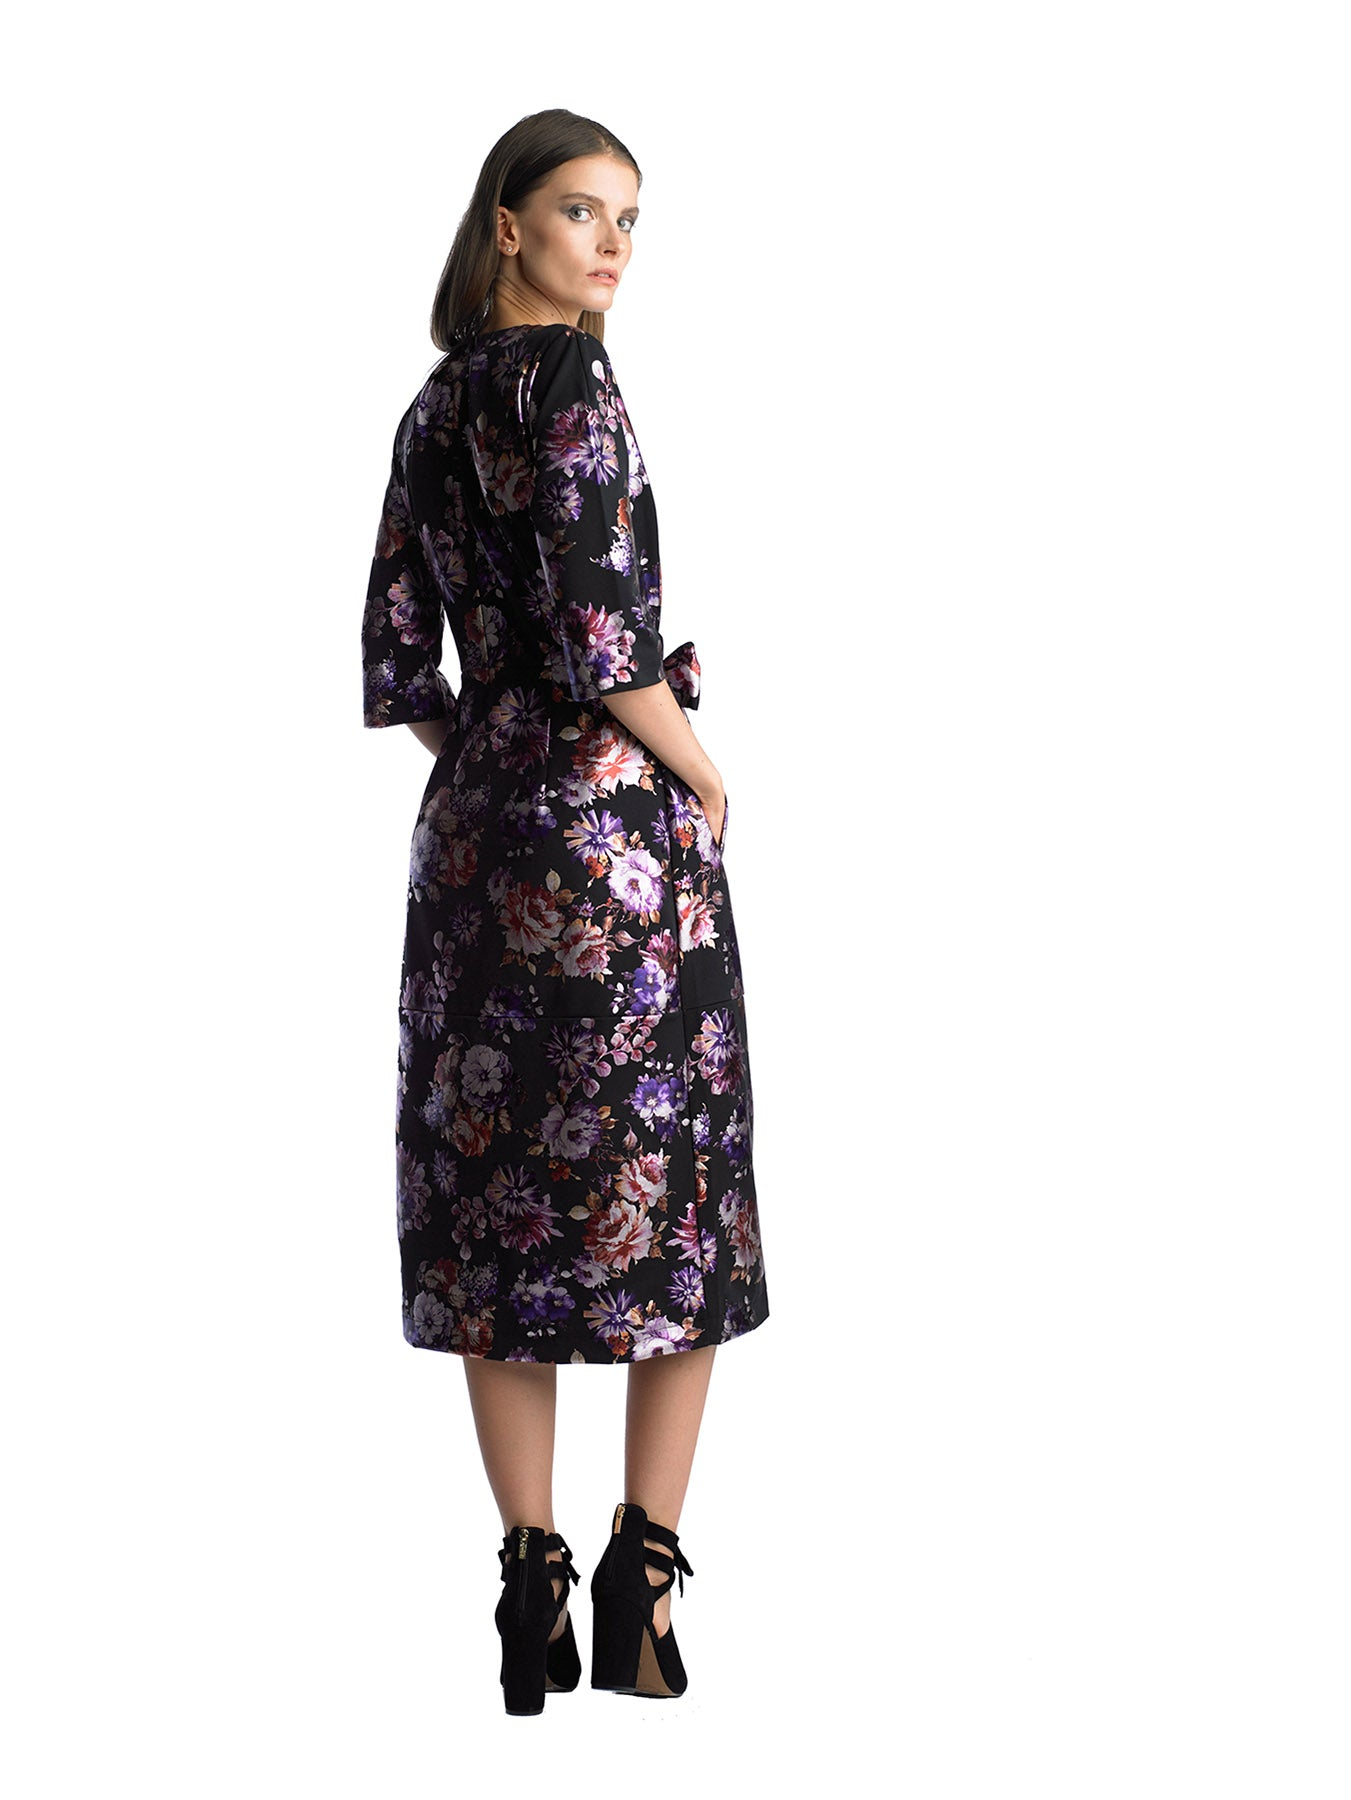 Historic New York Signature Metallic Floral Dress - Historic New York